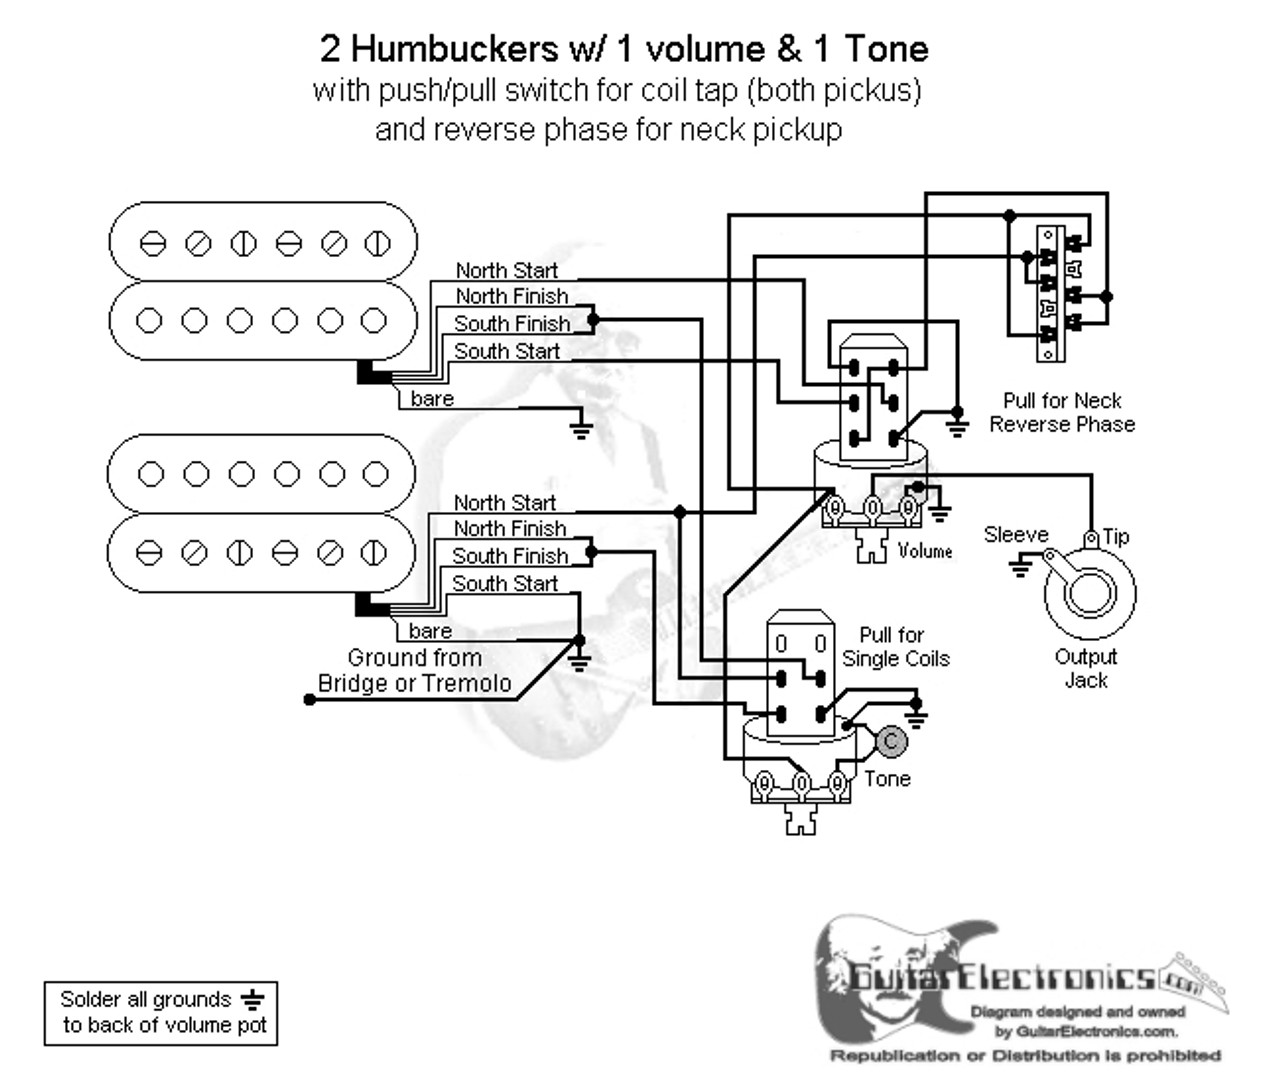 2 hbs 3 way lever 1 vol 1 tone coil tap \u0026 reverse phase